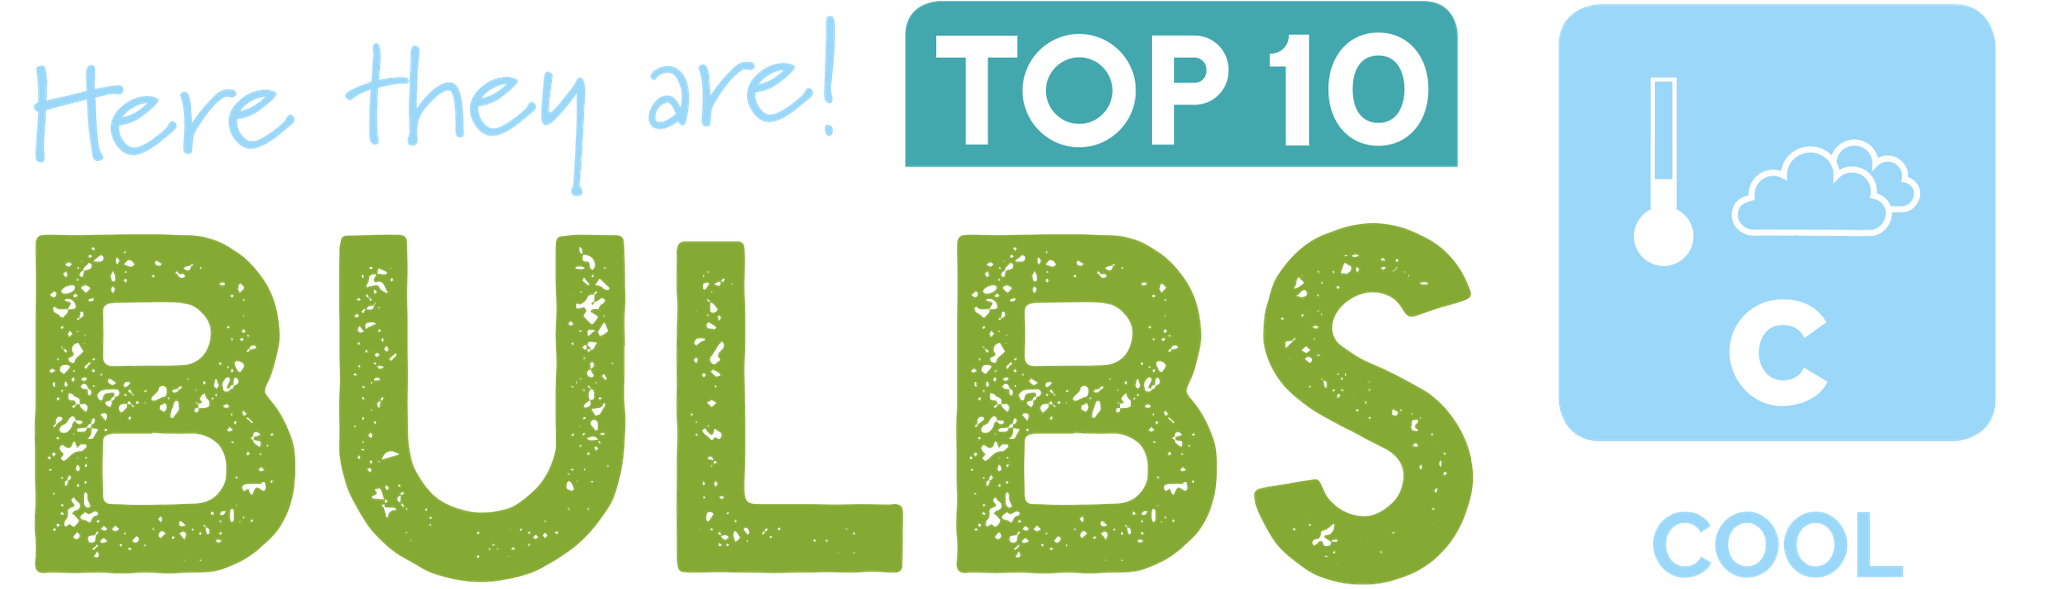 TOP 10 BULBS BANNER for your COOL CLIMATE ZONE in Australia